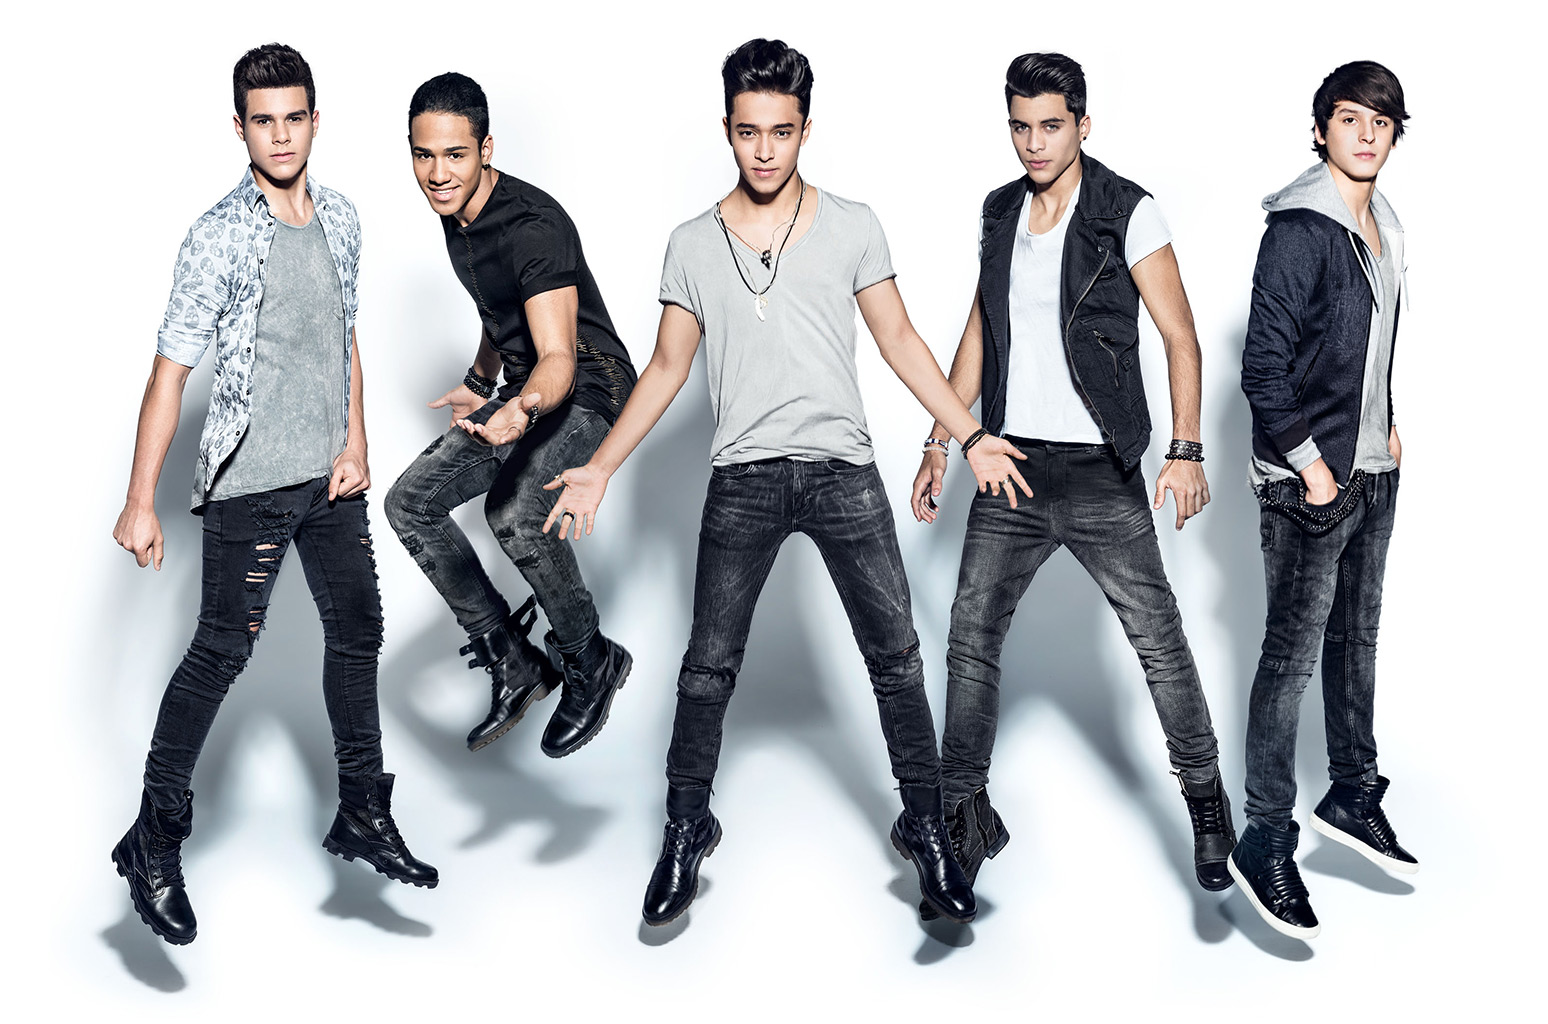 Celebrating CNCO's Success with Epic #FanArt